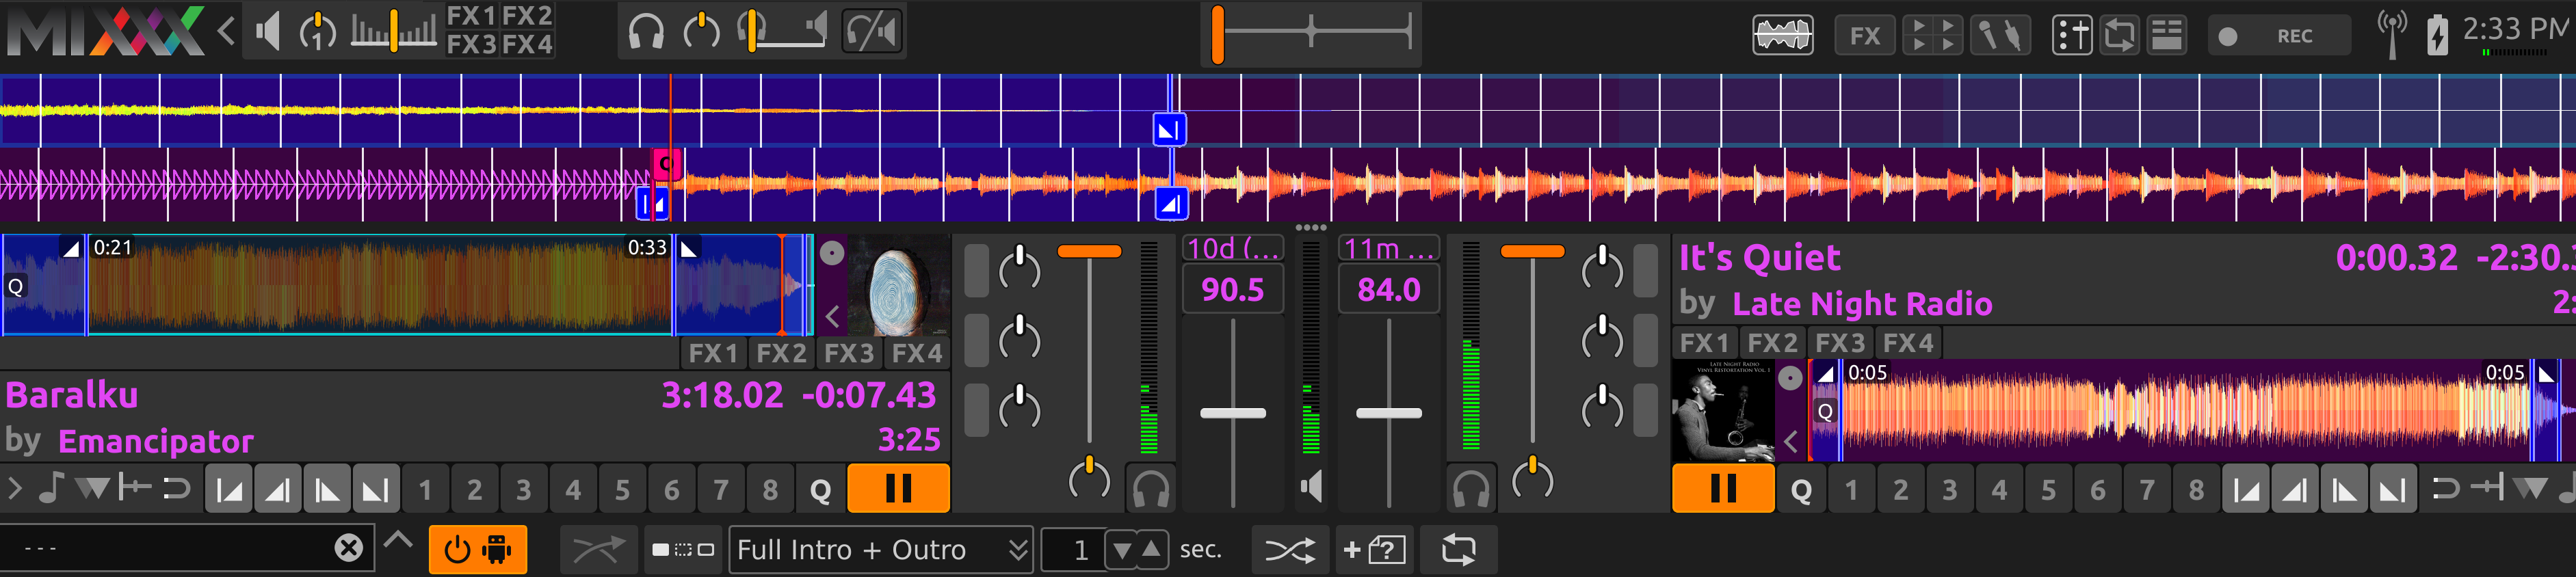 AutoDJ aligning the end of the intro and outro in Full Intro + Outro mode